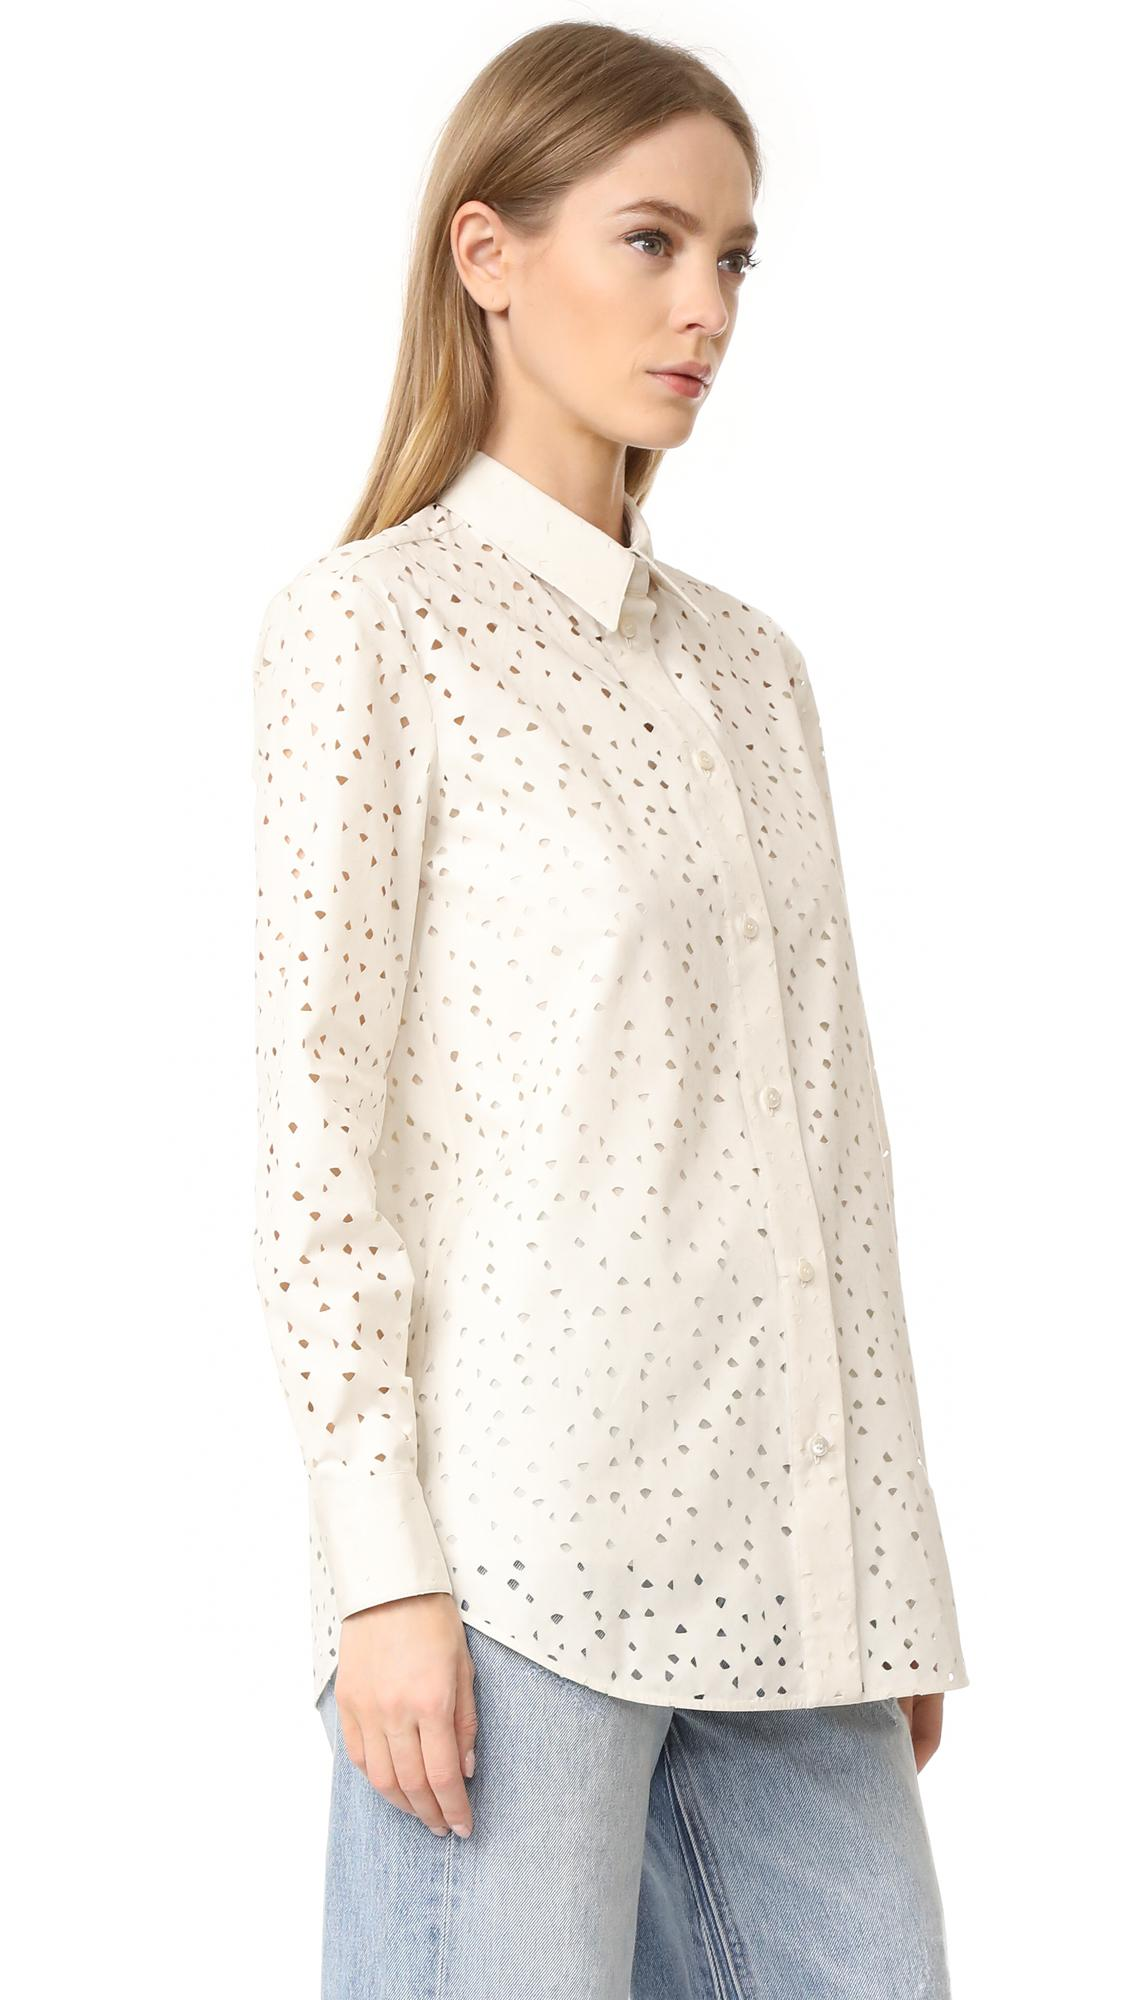 Ferragamo Embroidered Eyelet Blouse In White Lyst